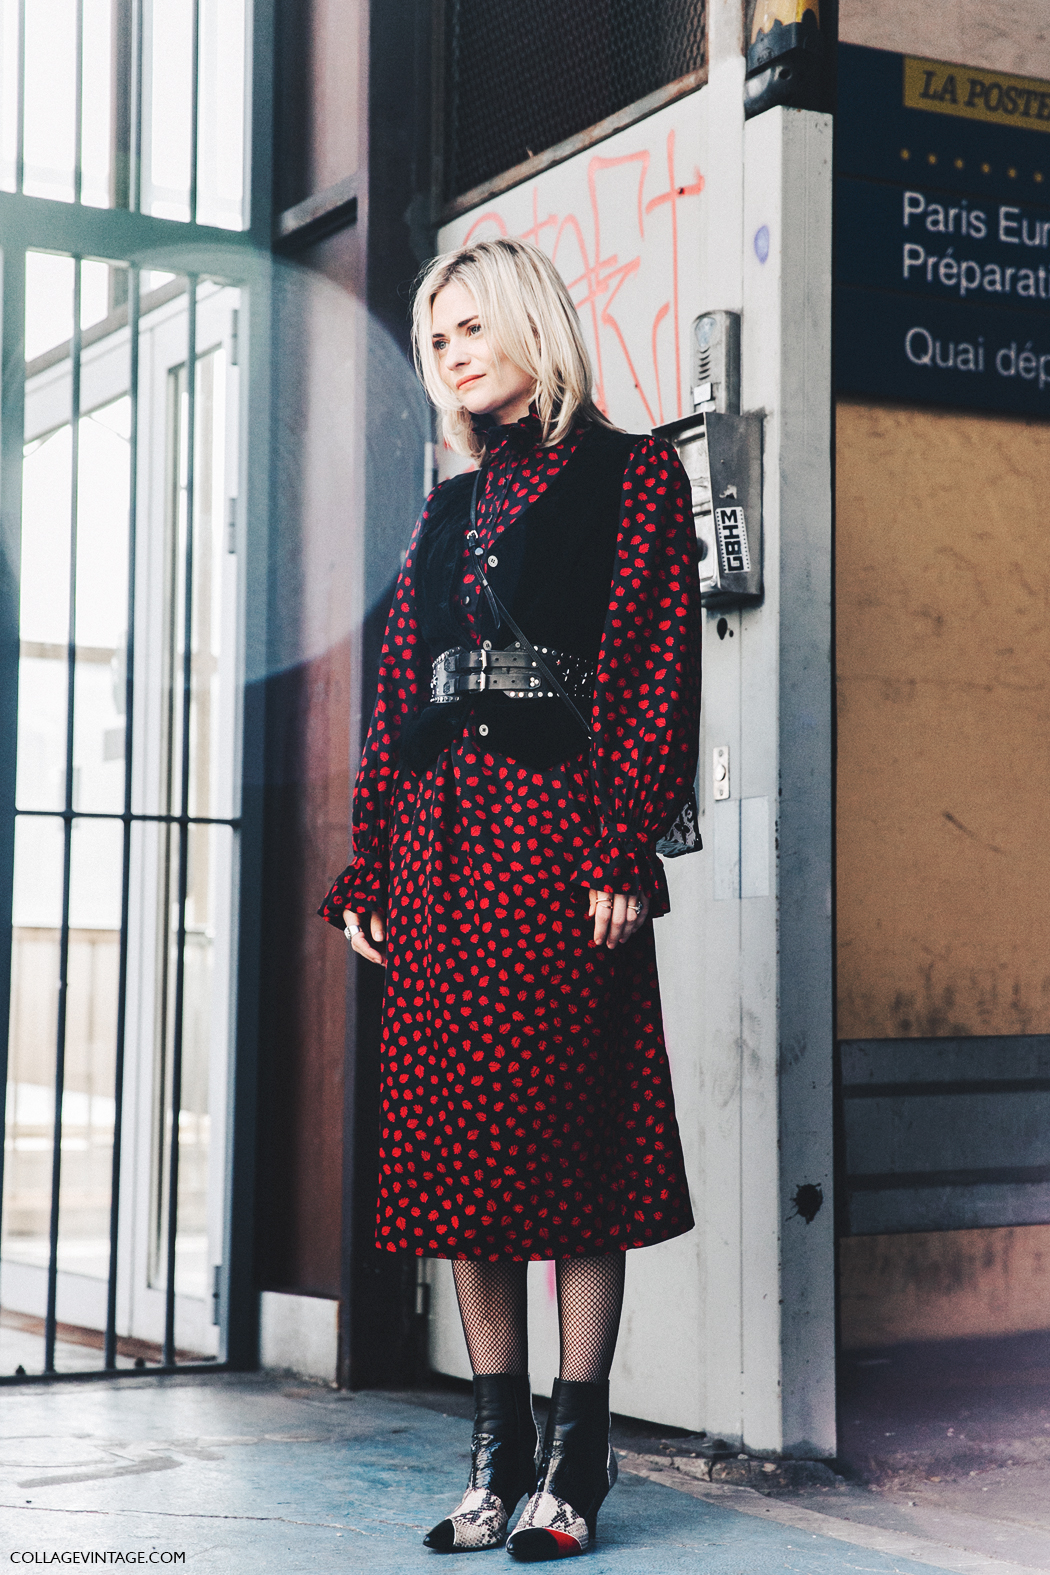 PFW-Paris_Fashion_Week_Fall_2016-Street_Style-Collage_Vintage-Pandora_Sykes-